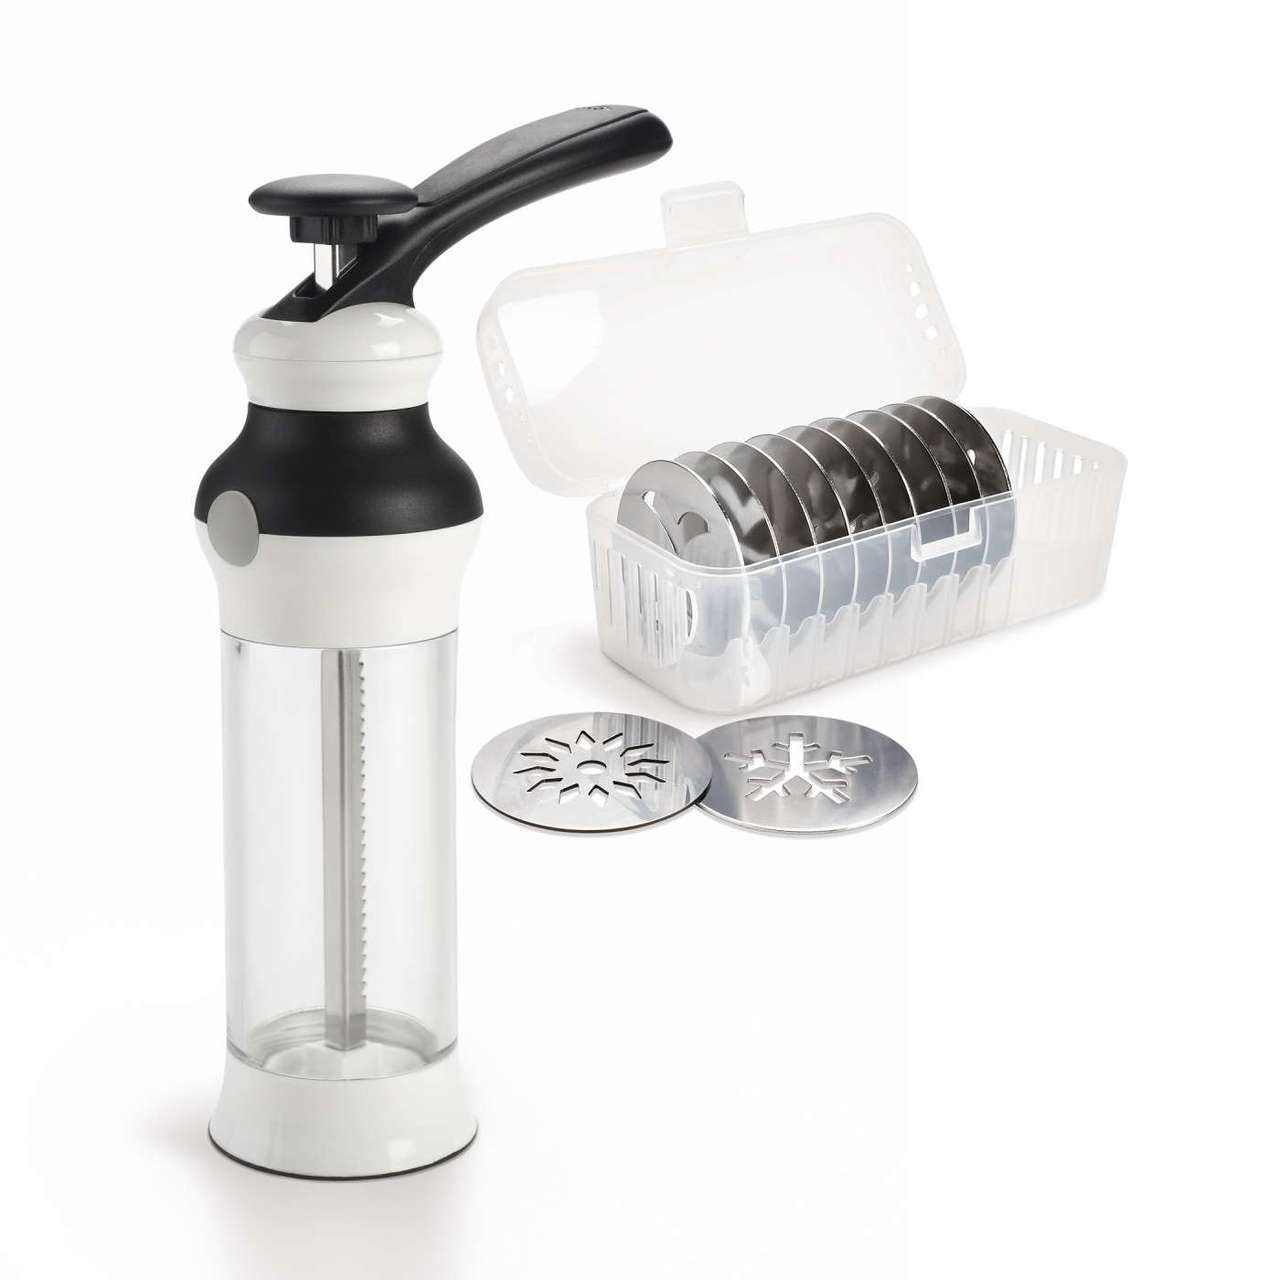 OXO COOKIE PRESS SET